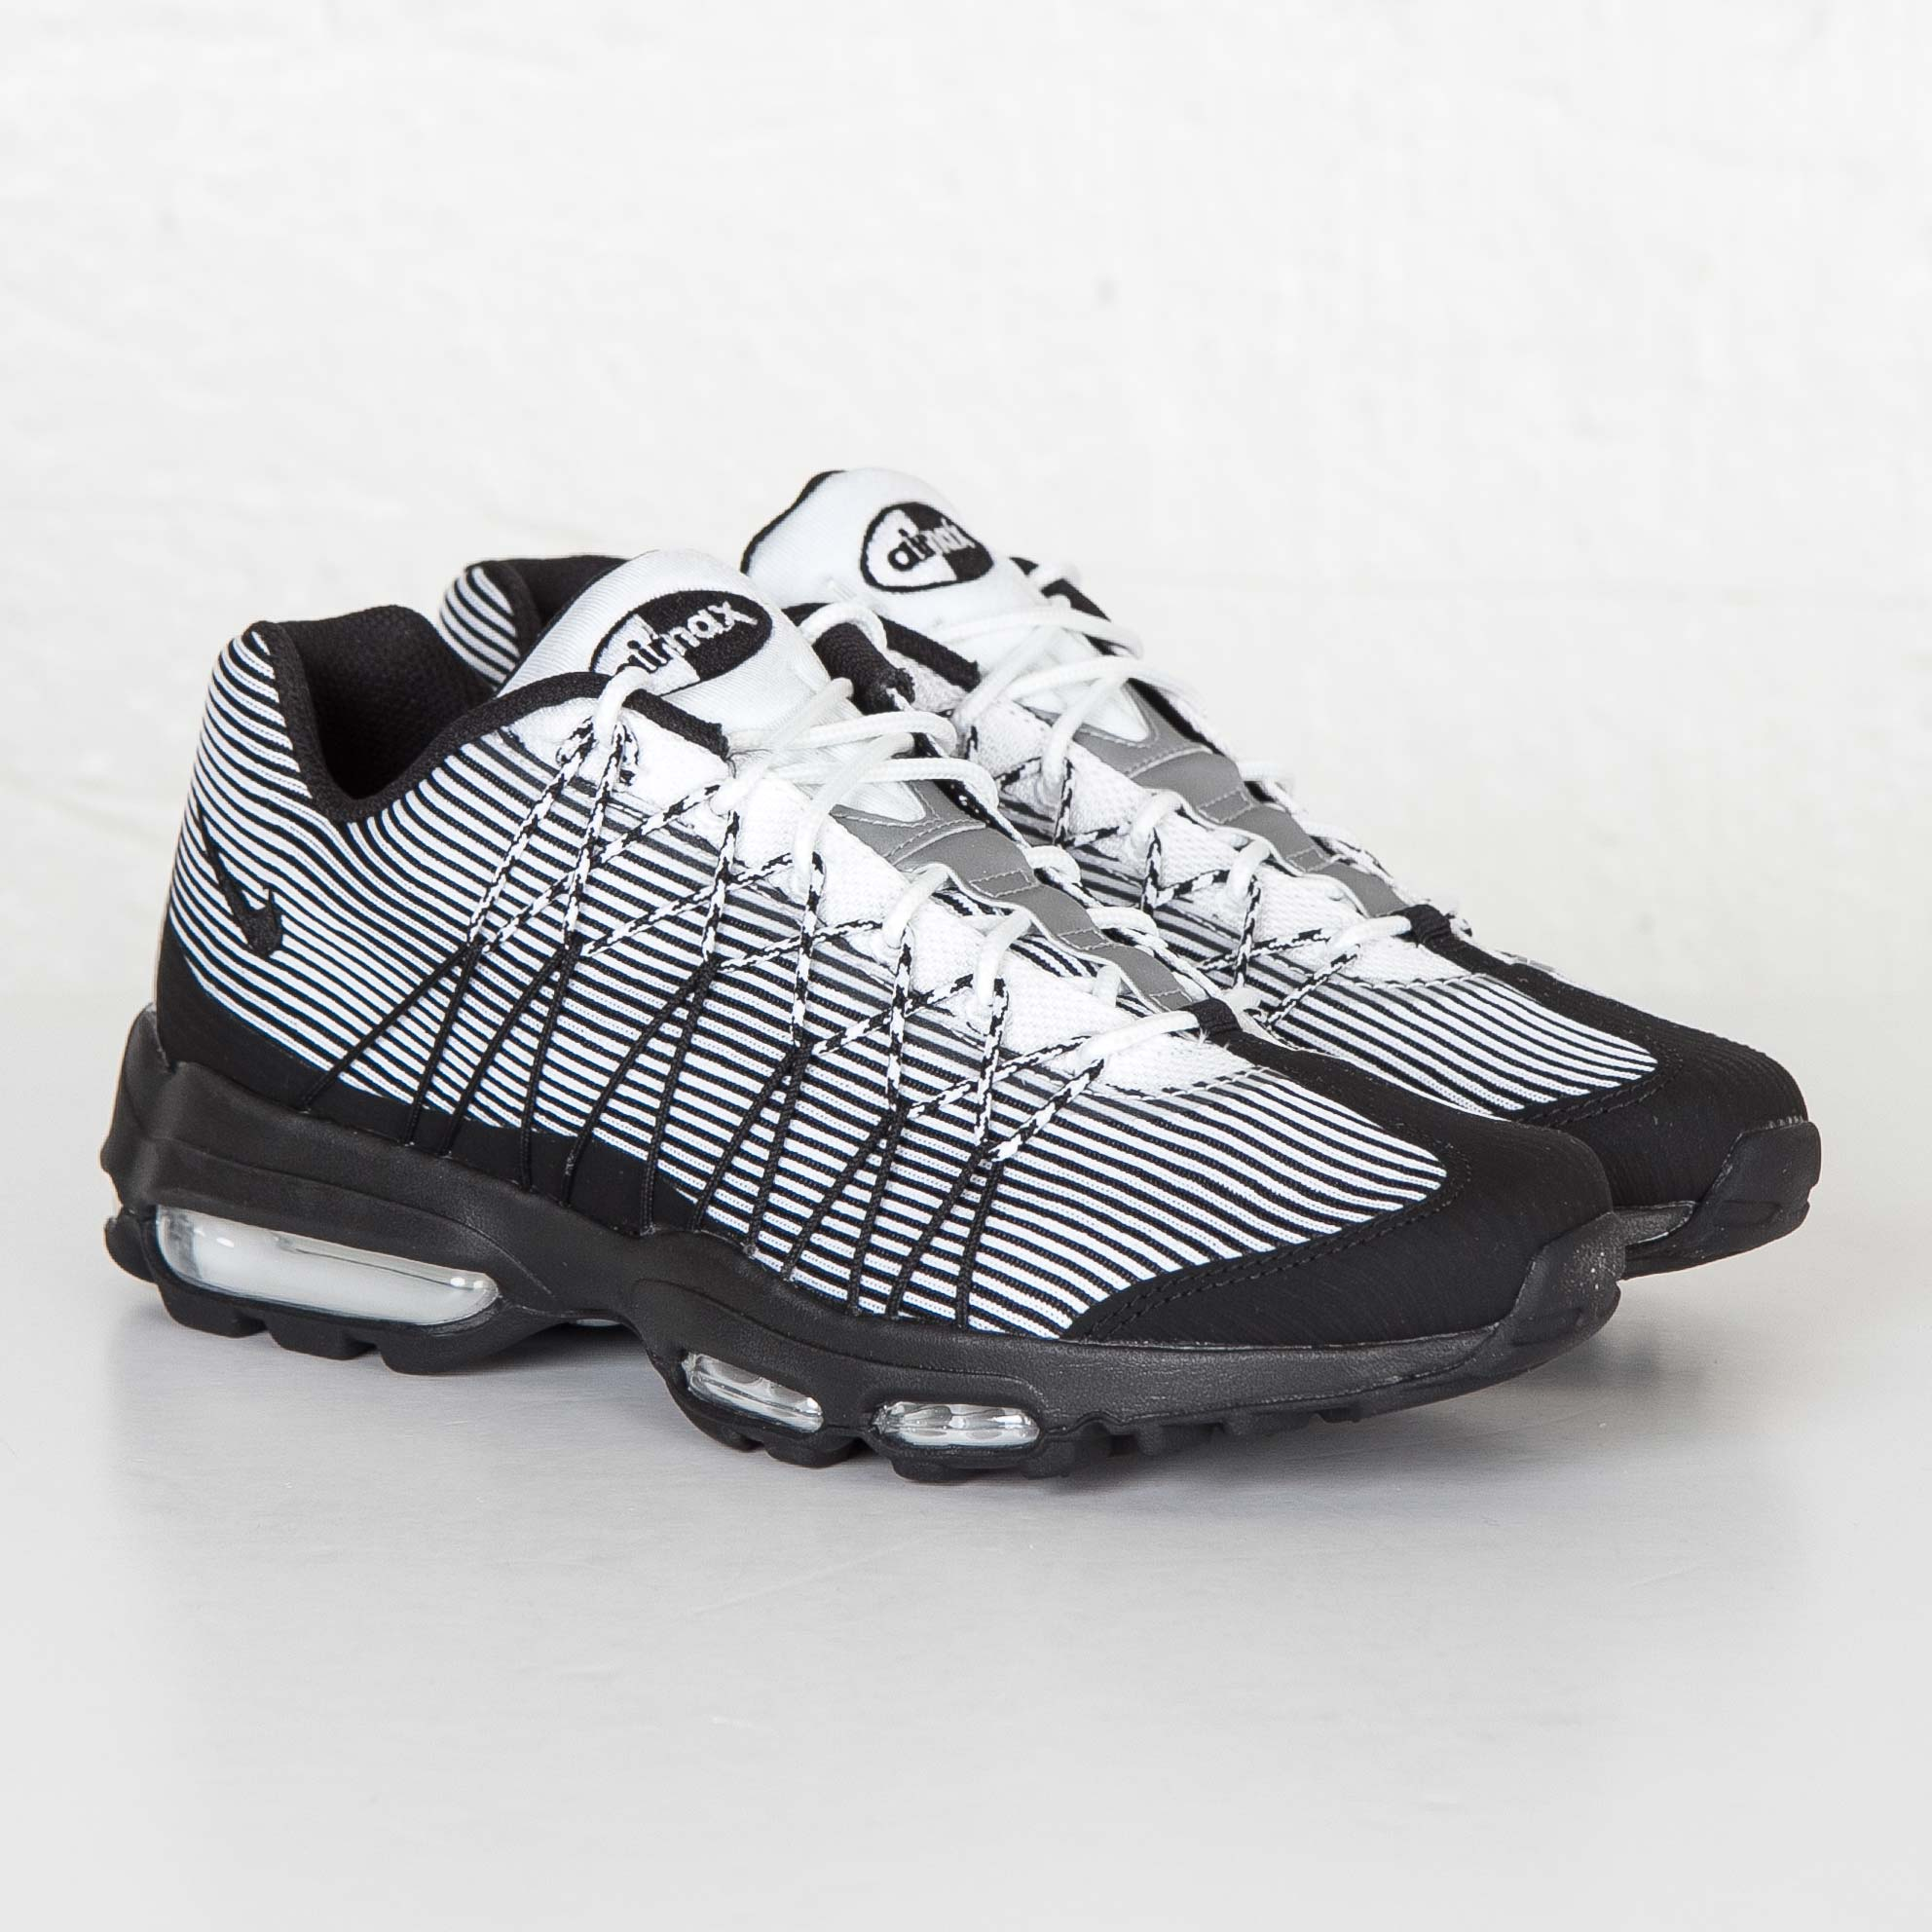 outlet store 6c95f c3240 Nike Air Max 95 Ultra Jacquard - 749771-101 - Sneakersnstuff ... nike